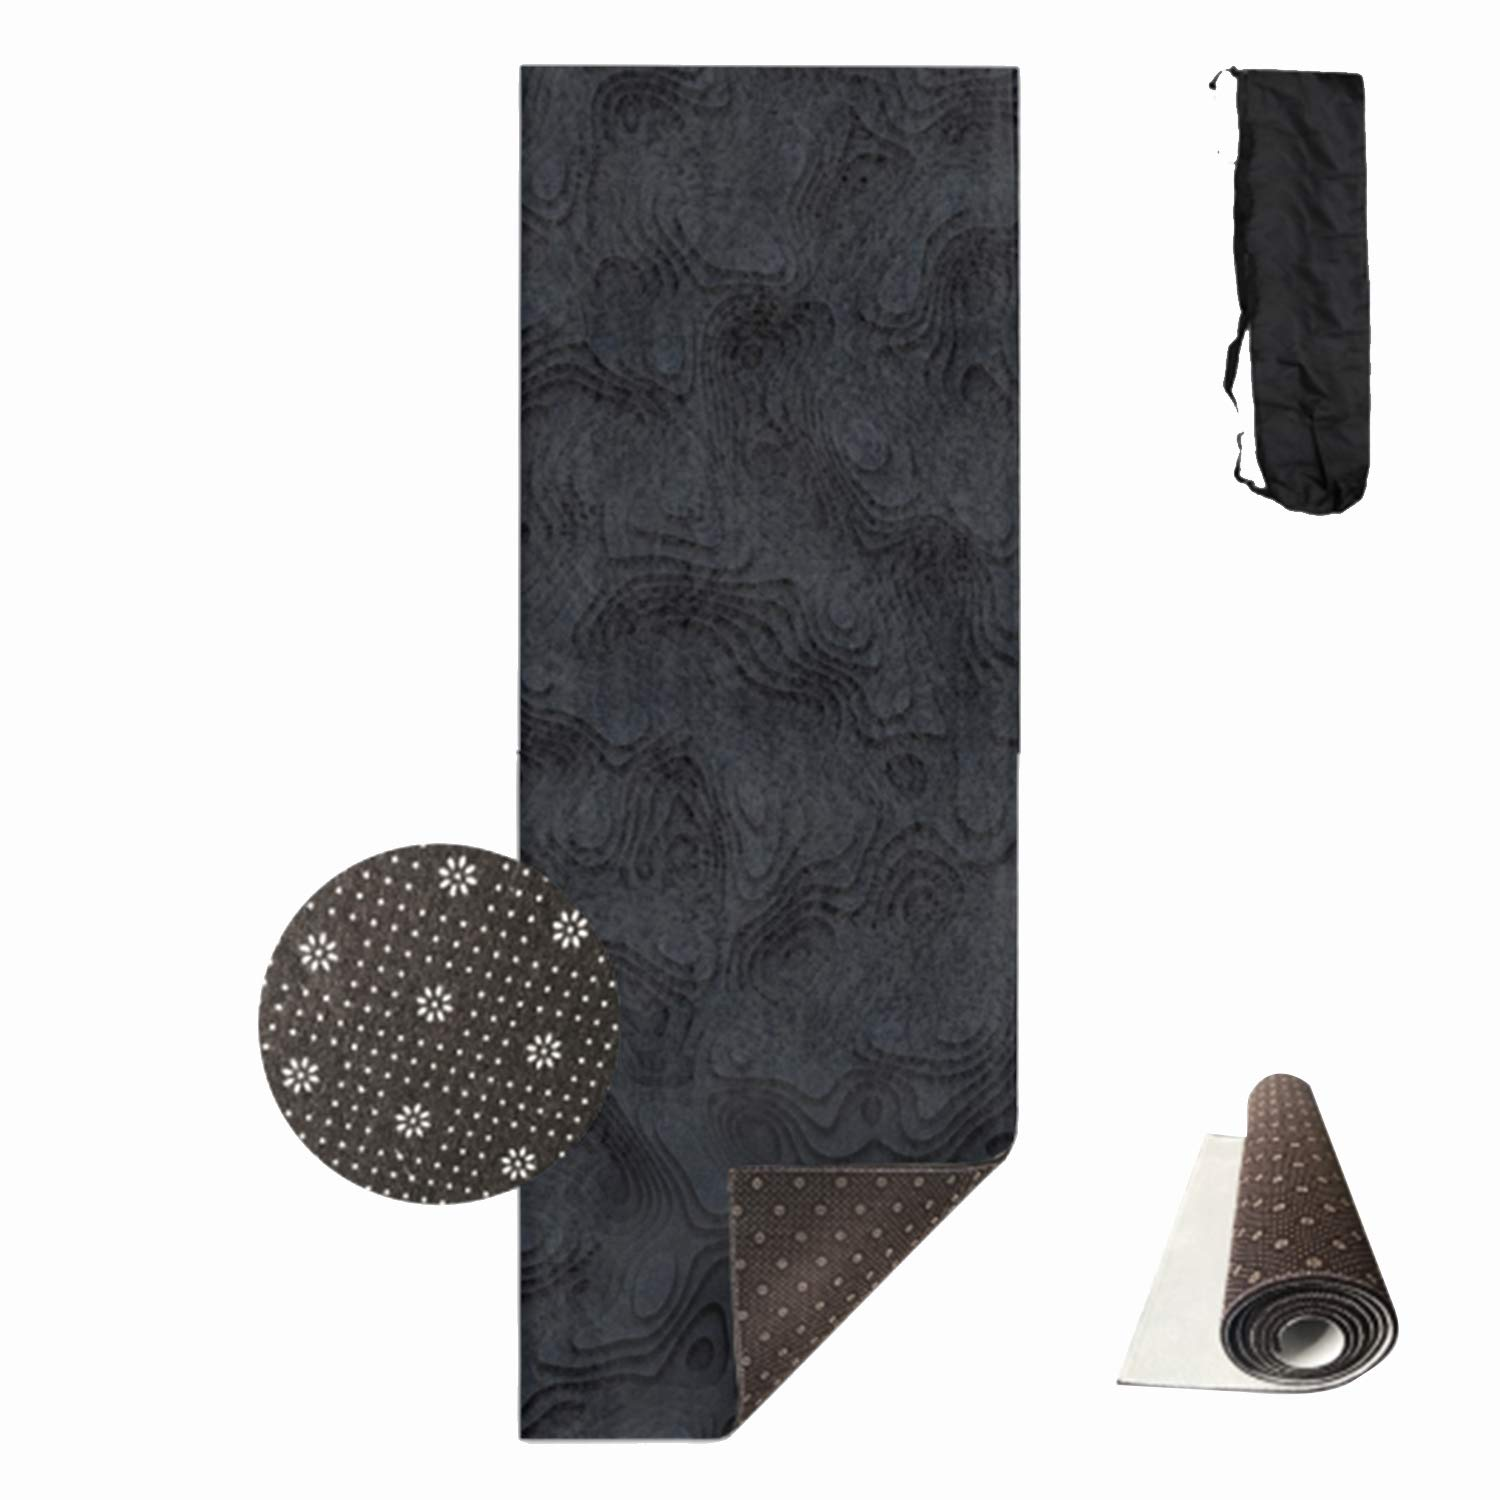 HHNYL Black Clouds Yoga Mats Luxuriously Soft, Printed, Non-Slip, Eco Friendly Yoga Mat